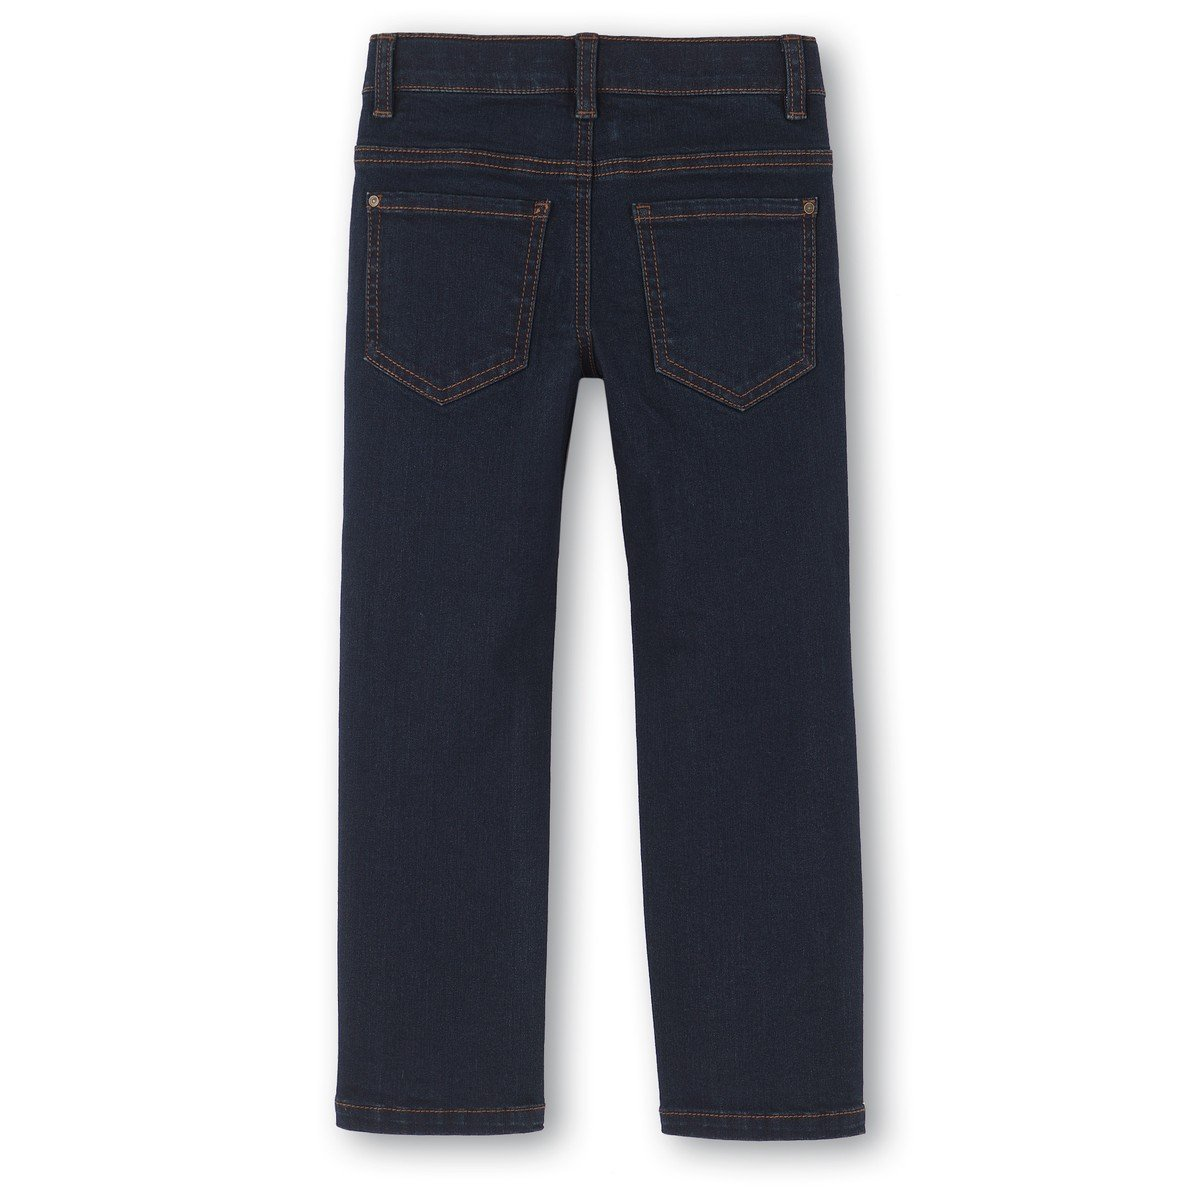 La Redoute Collections Big Boys Straight Jeans 3-12 Years